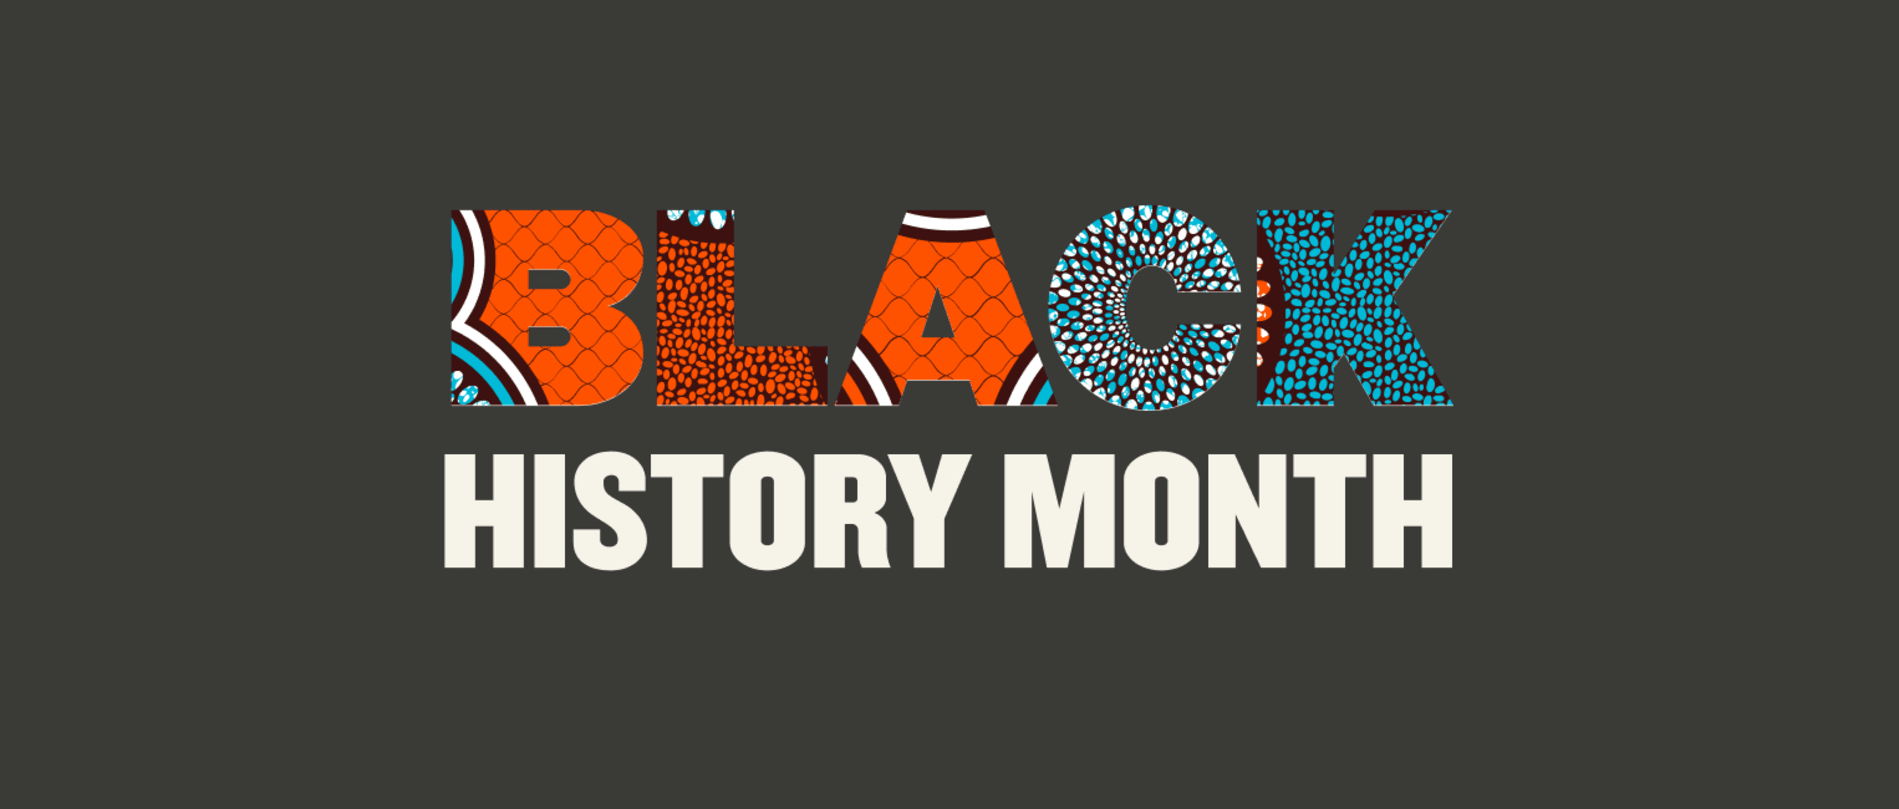 black-history-month-in-the-workplace